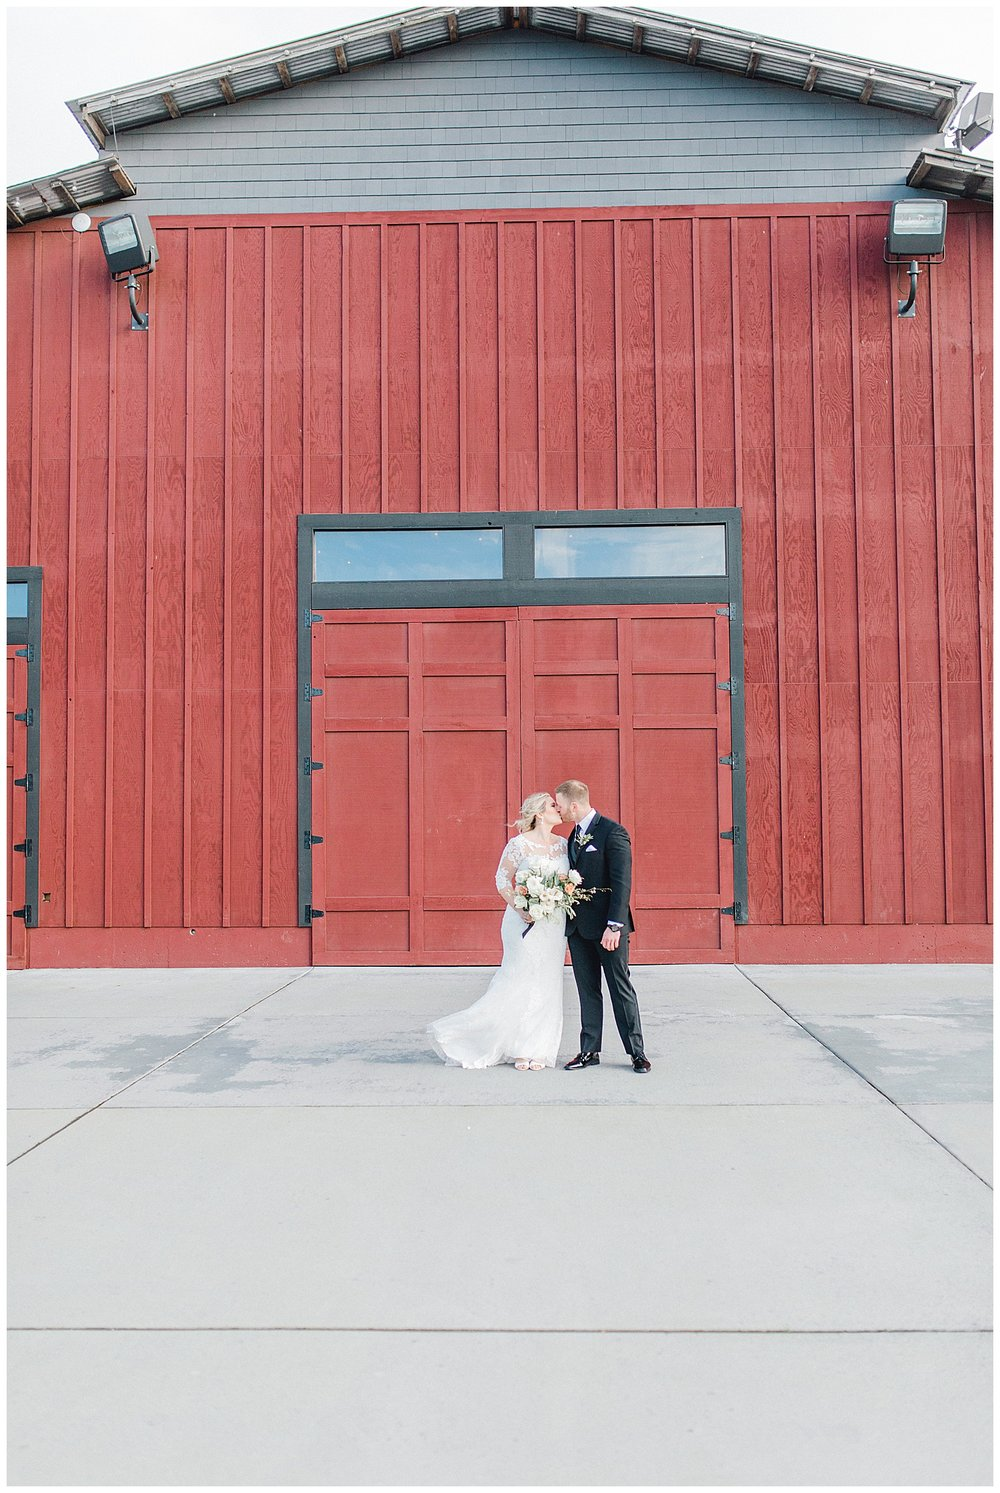 ERC-7294_A beautiful winter wedding in Snohomish, Washington at Thomas Family Farm was simply perfect.  This rustic and modern styled wedding was dripping with romance and photographed by Emma Rose Company, a pacific northwest wedding photographer..jpg